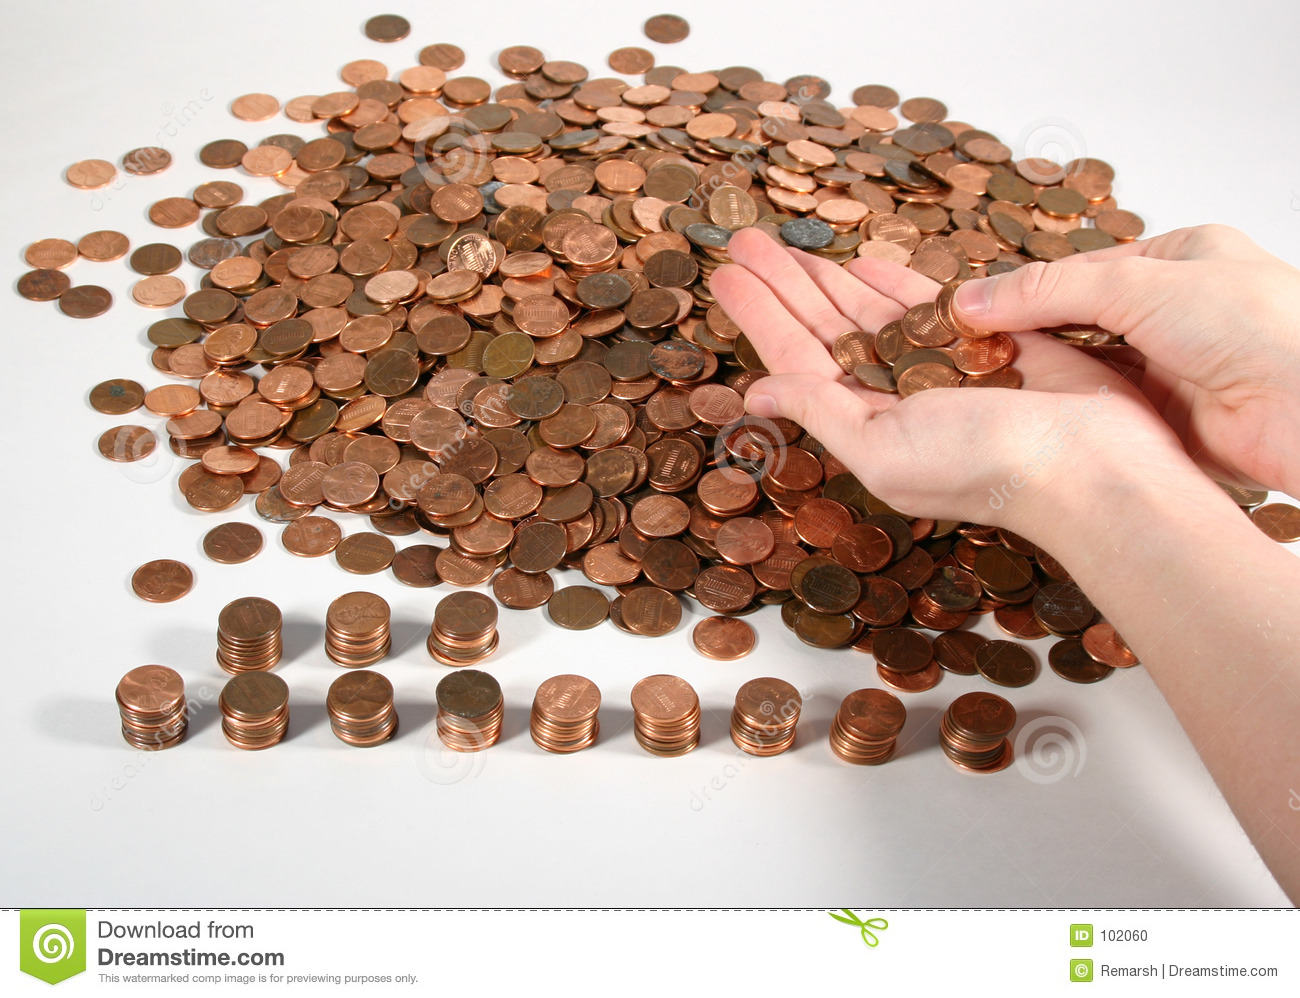 Counting Pennies Stock Photo - Image: 102060